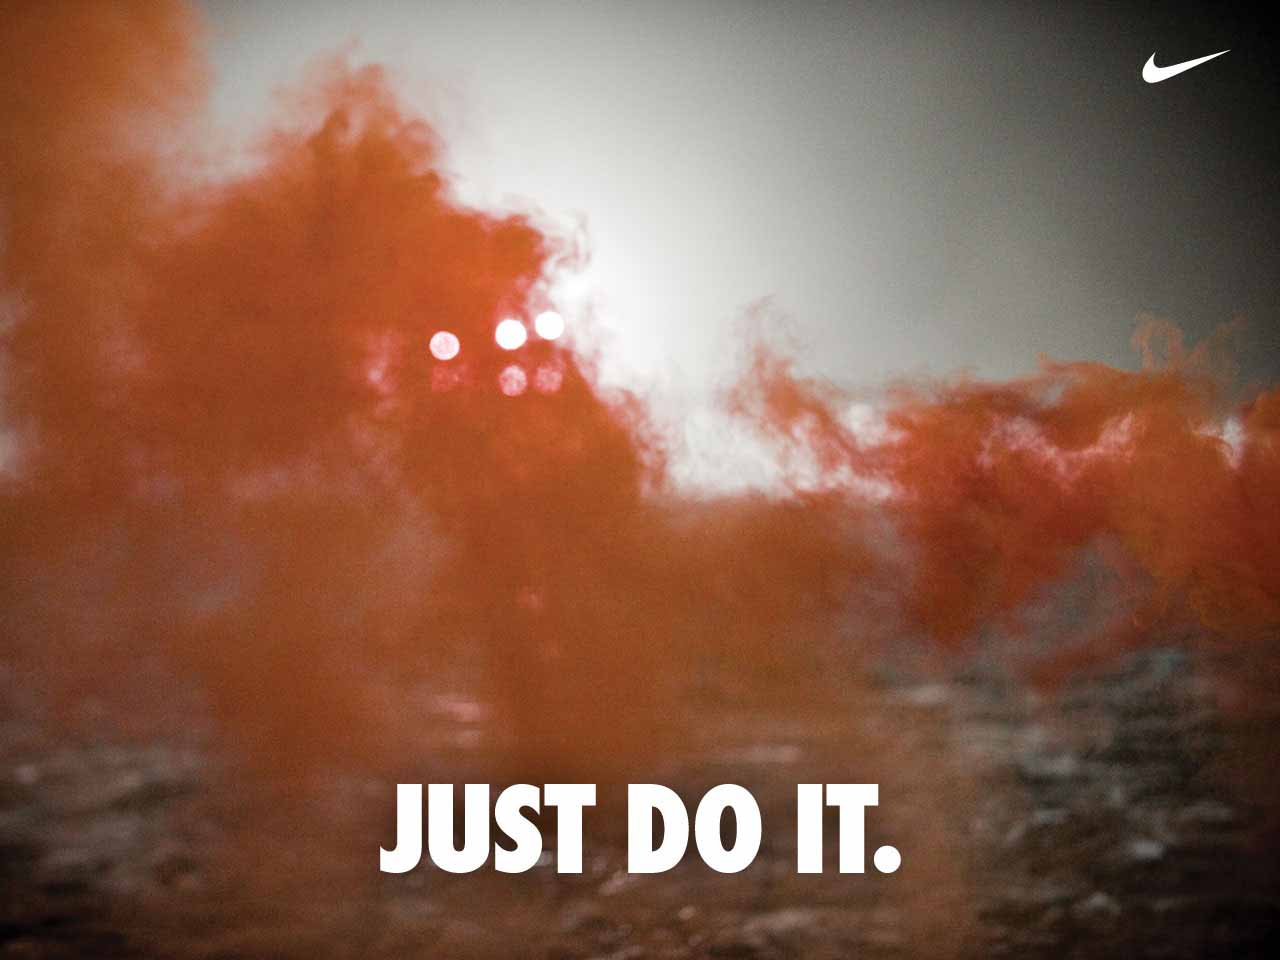 Trends For > Nike Just Do It Wallpapers Hd